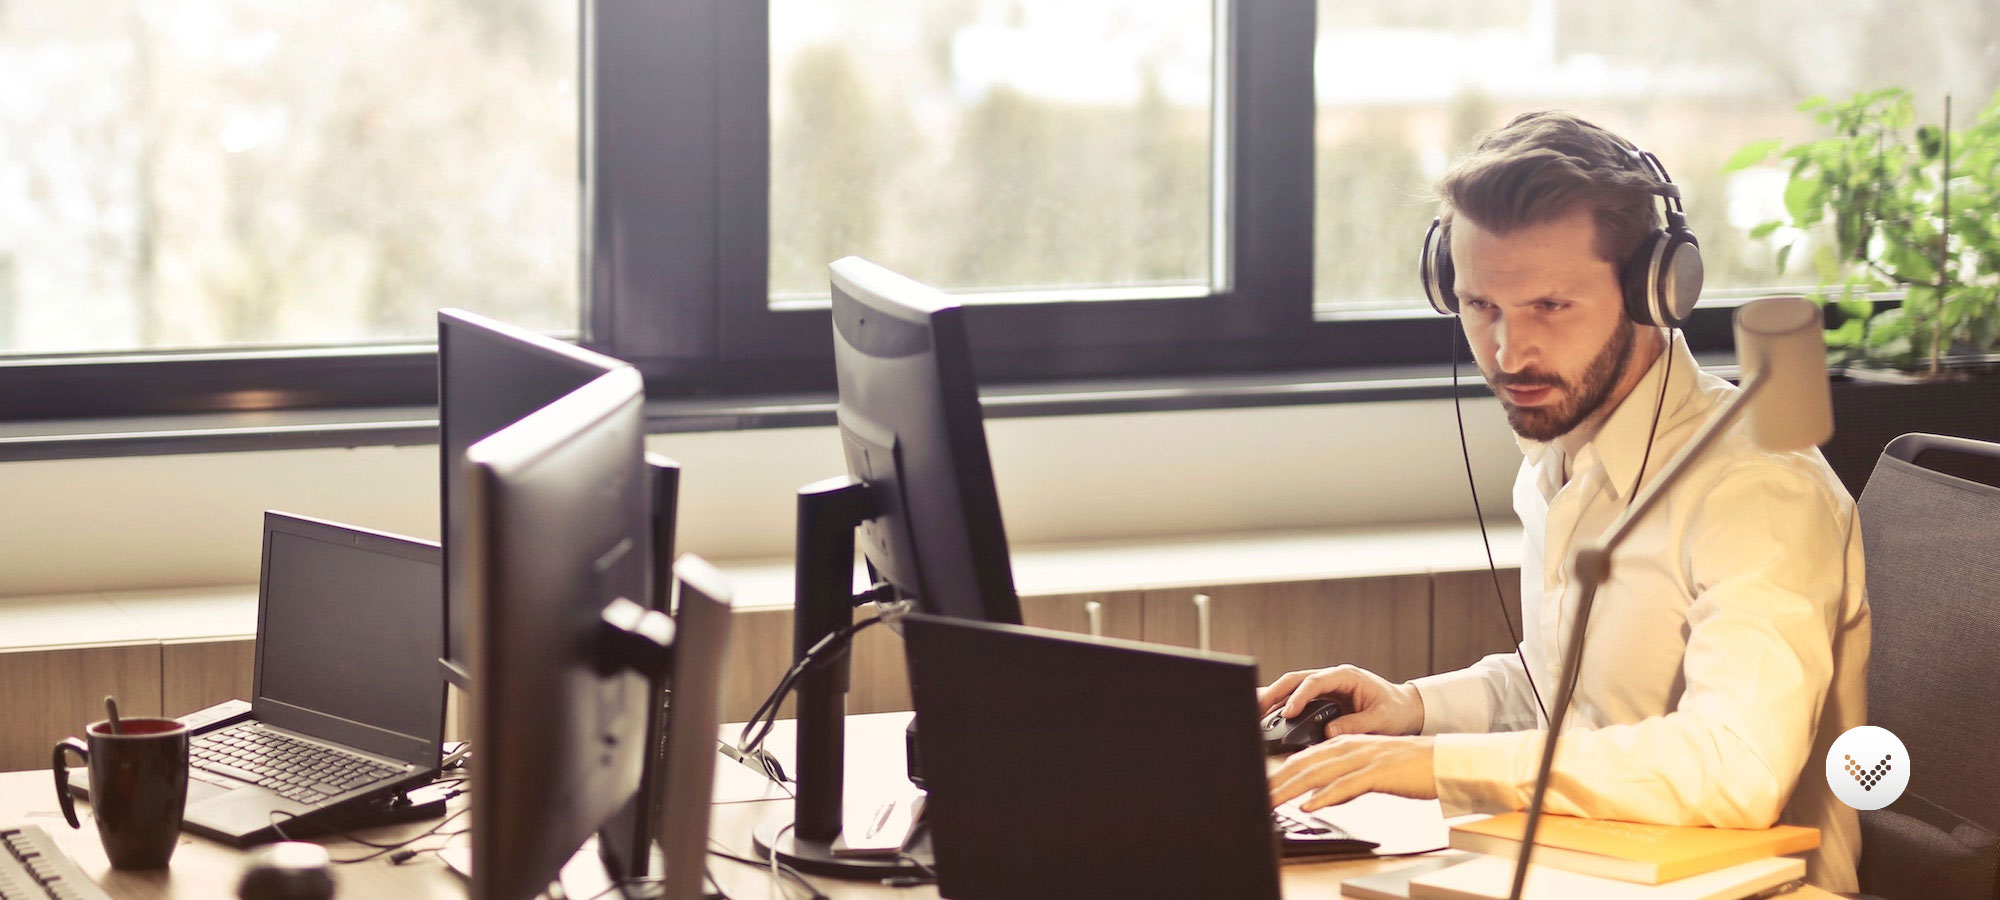 Male sitting at desk monitoring a computer screen while wearing wired headphones.